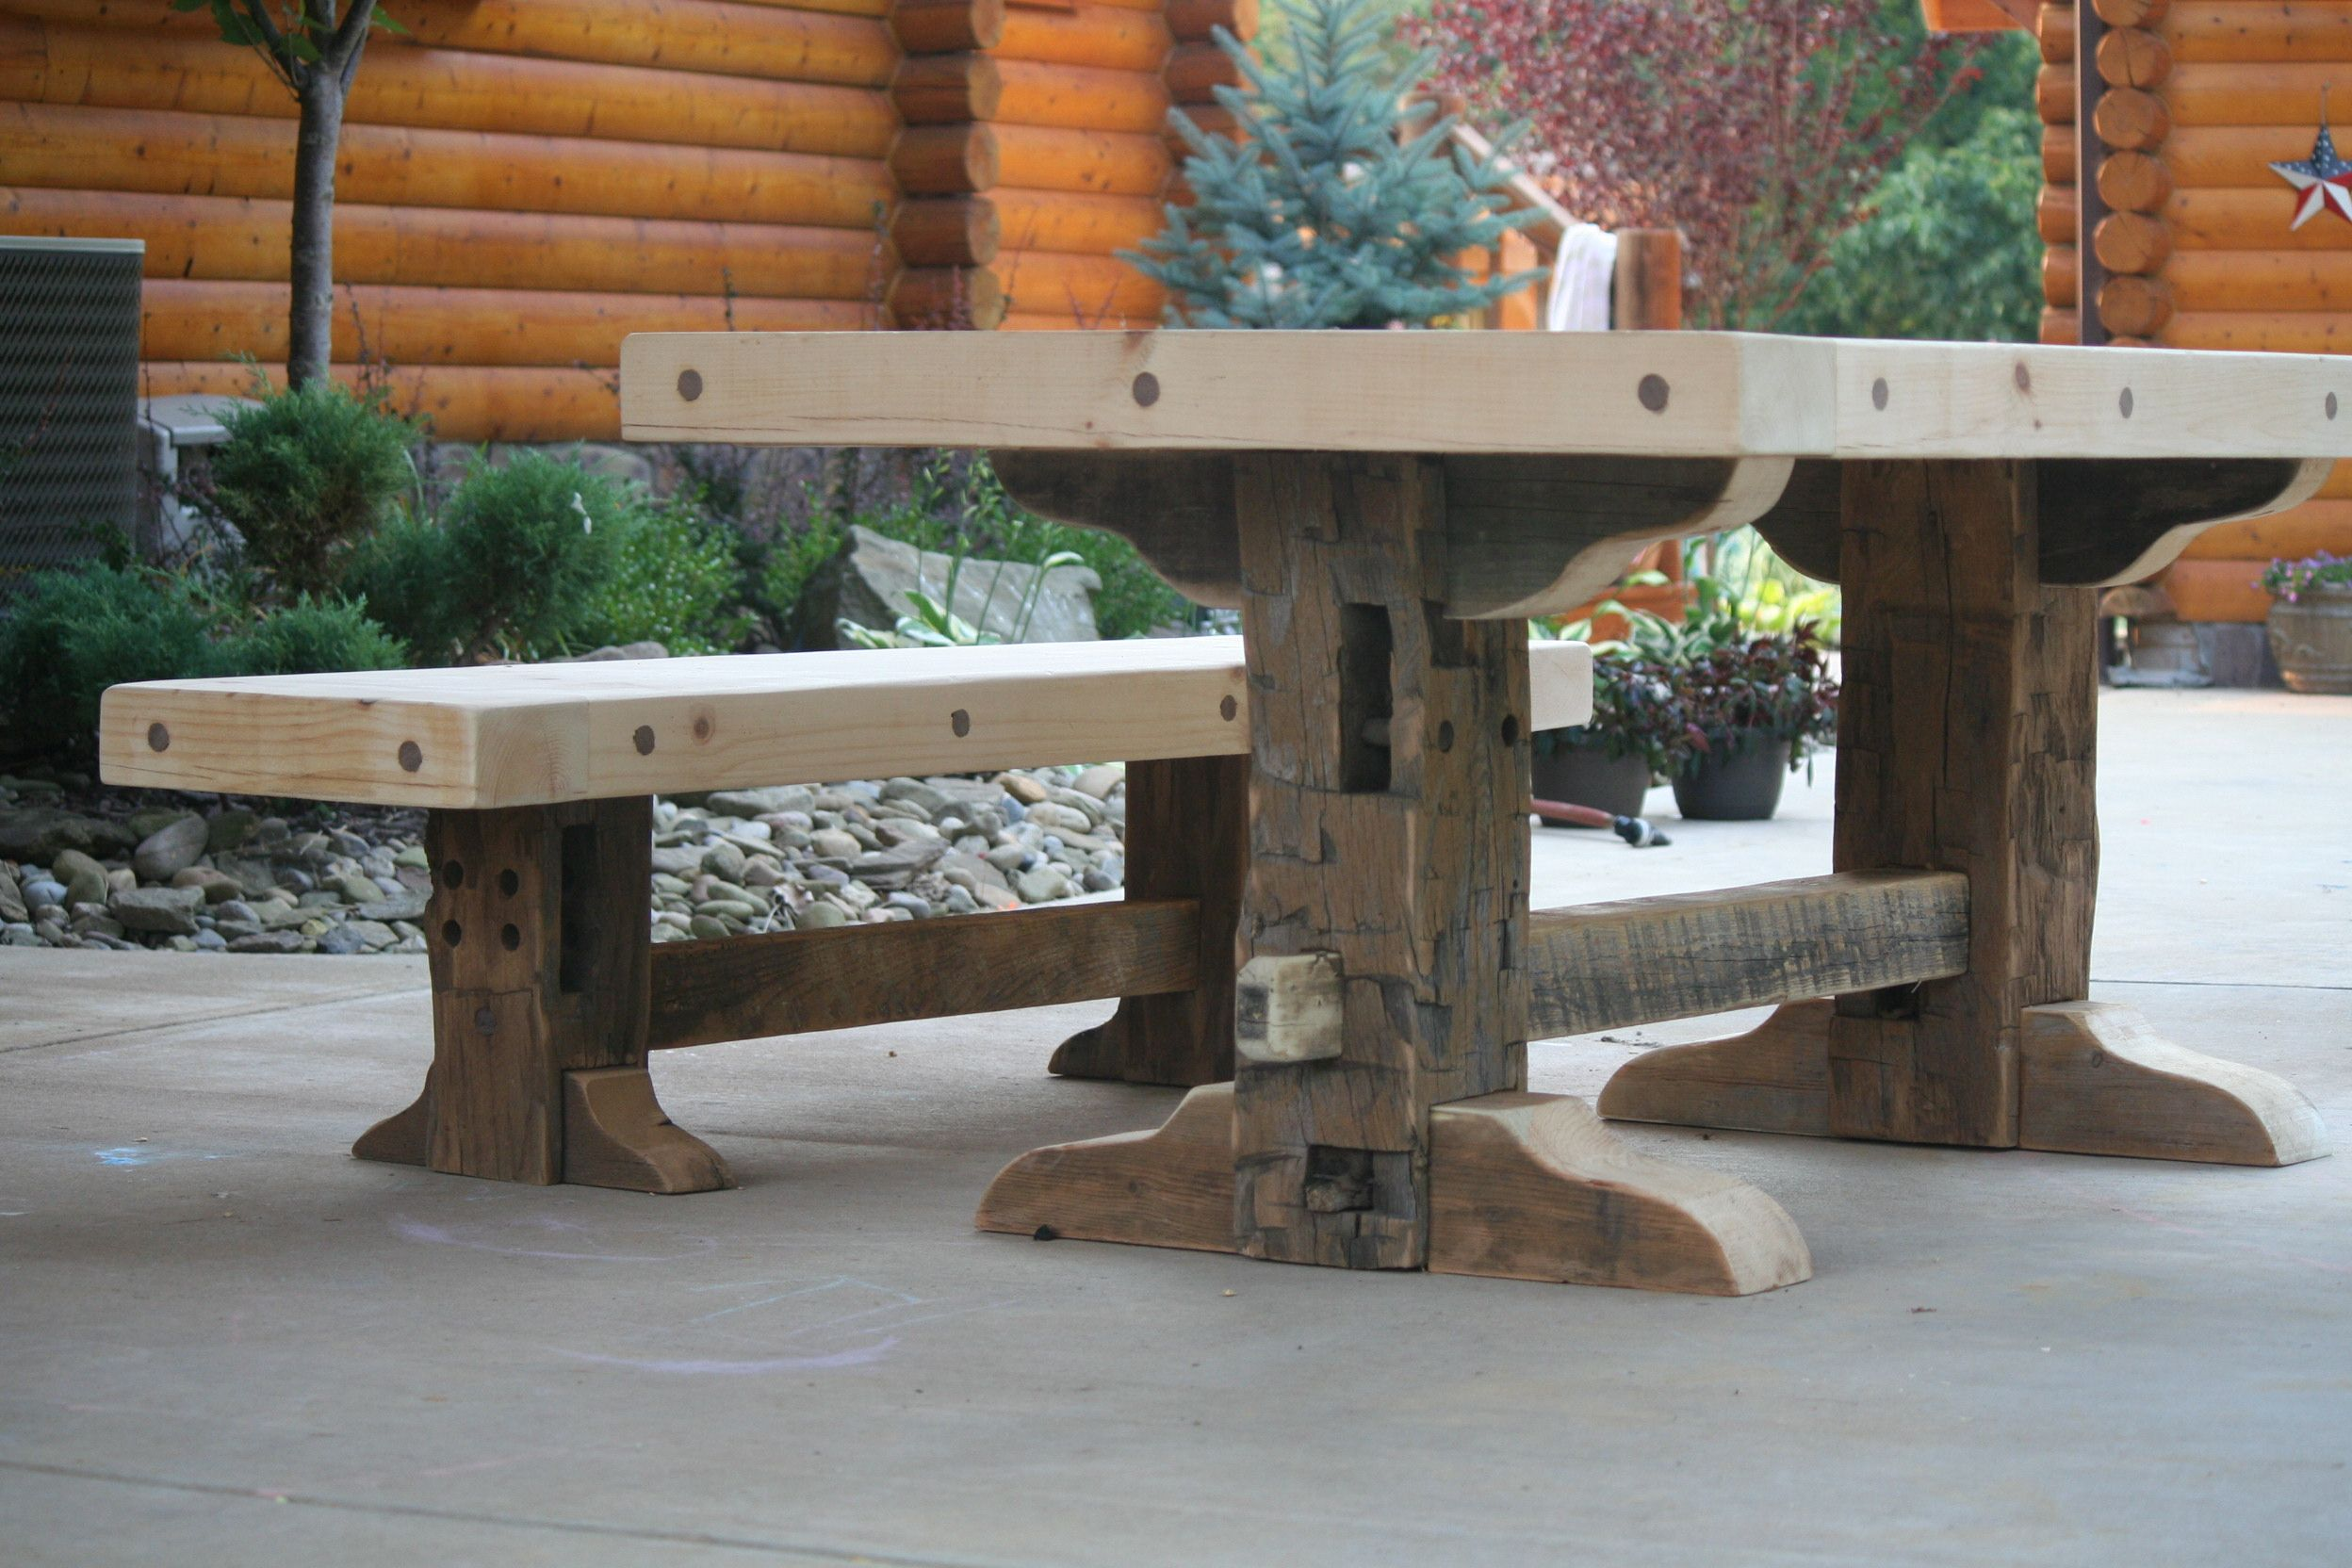 Heath made another (unfinished) table :)